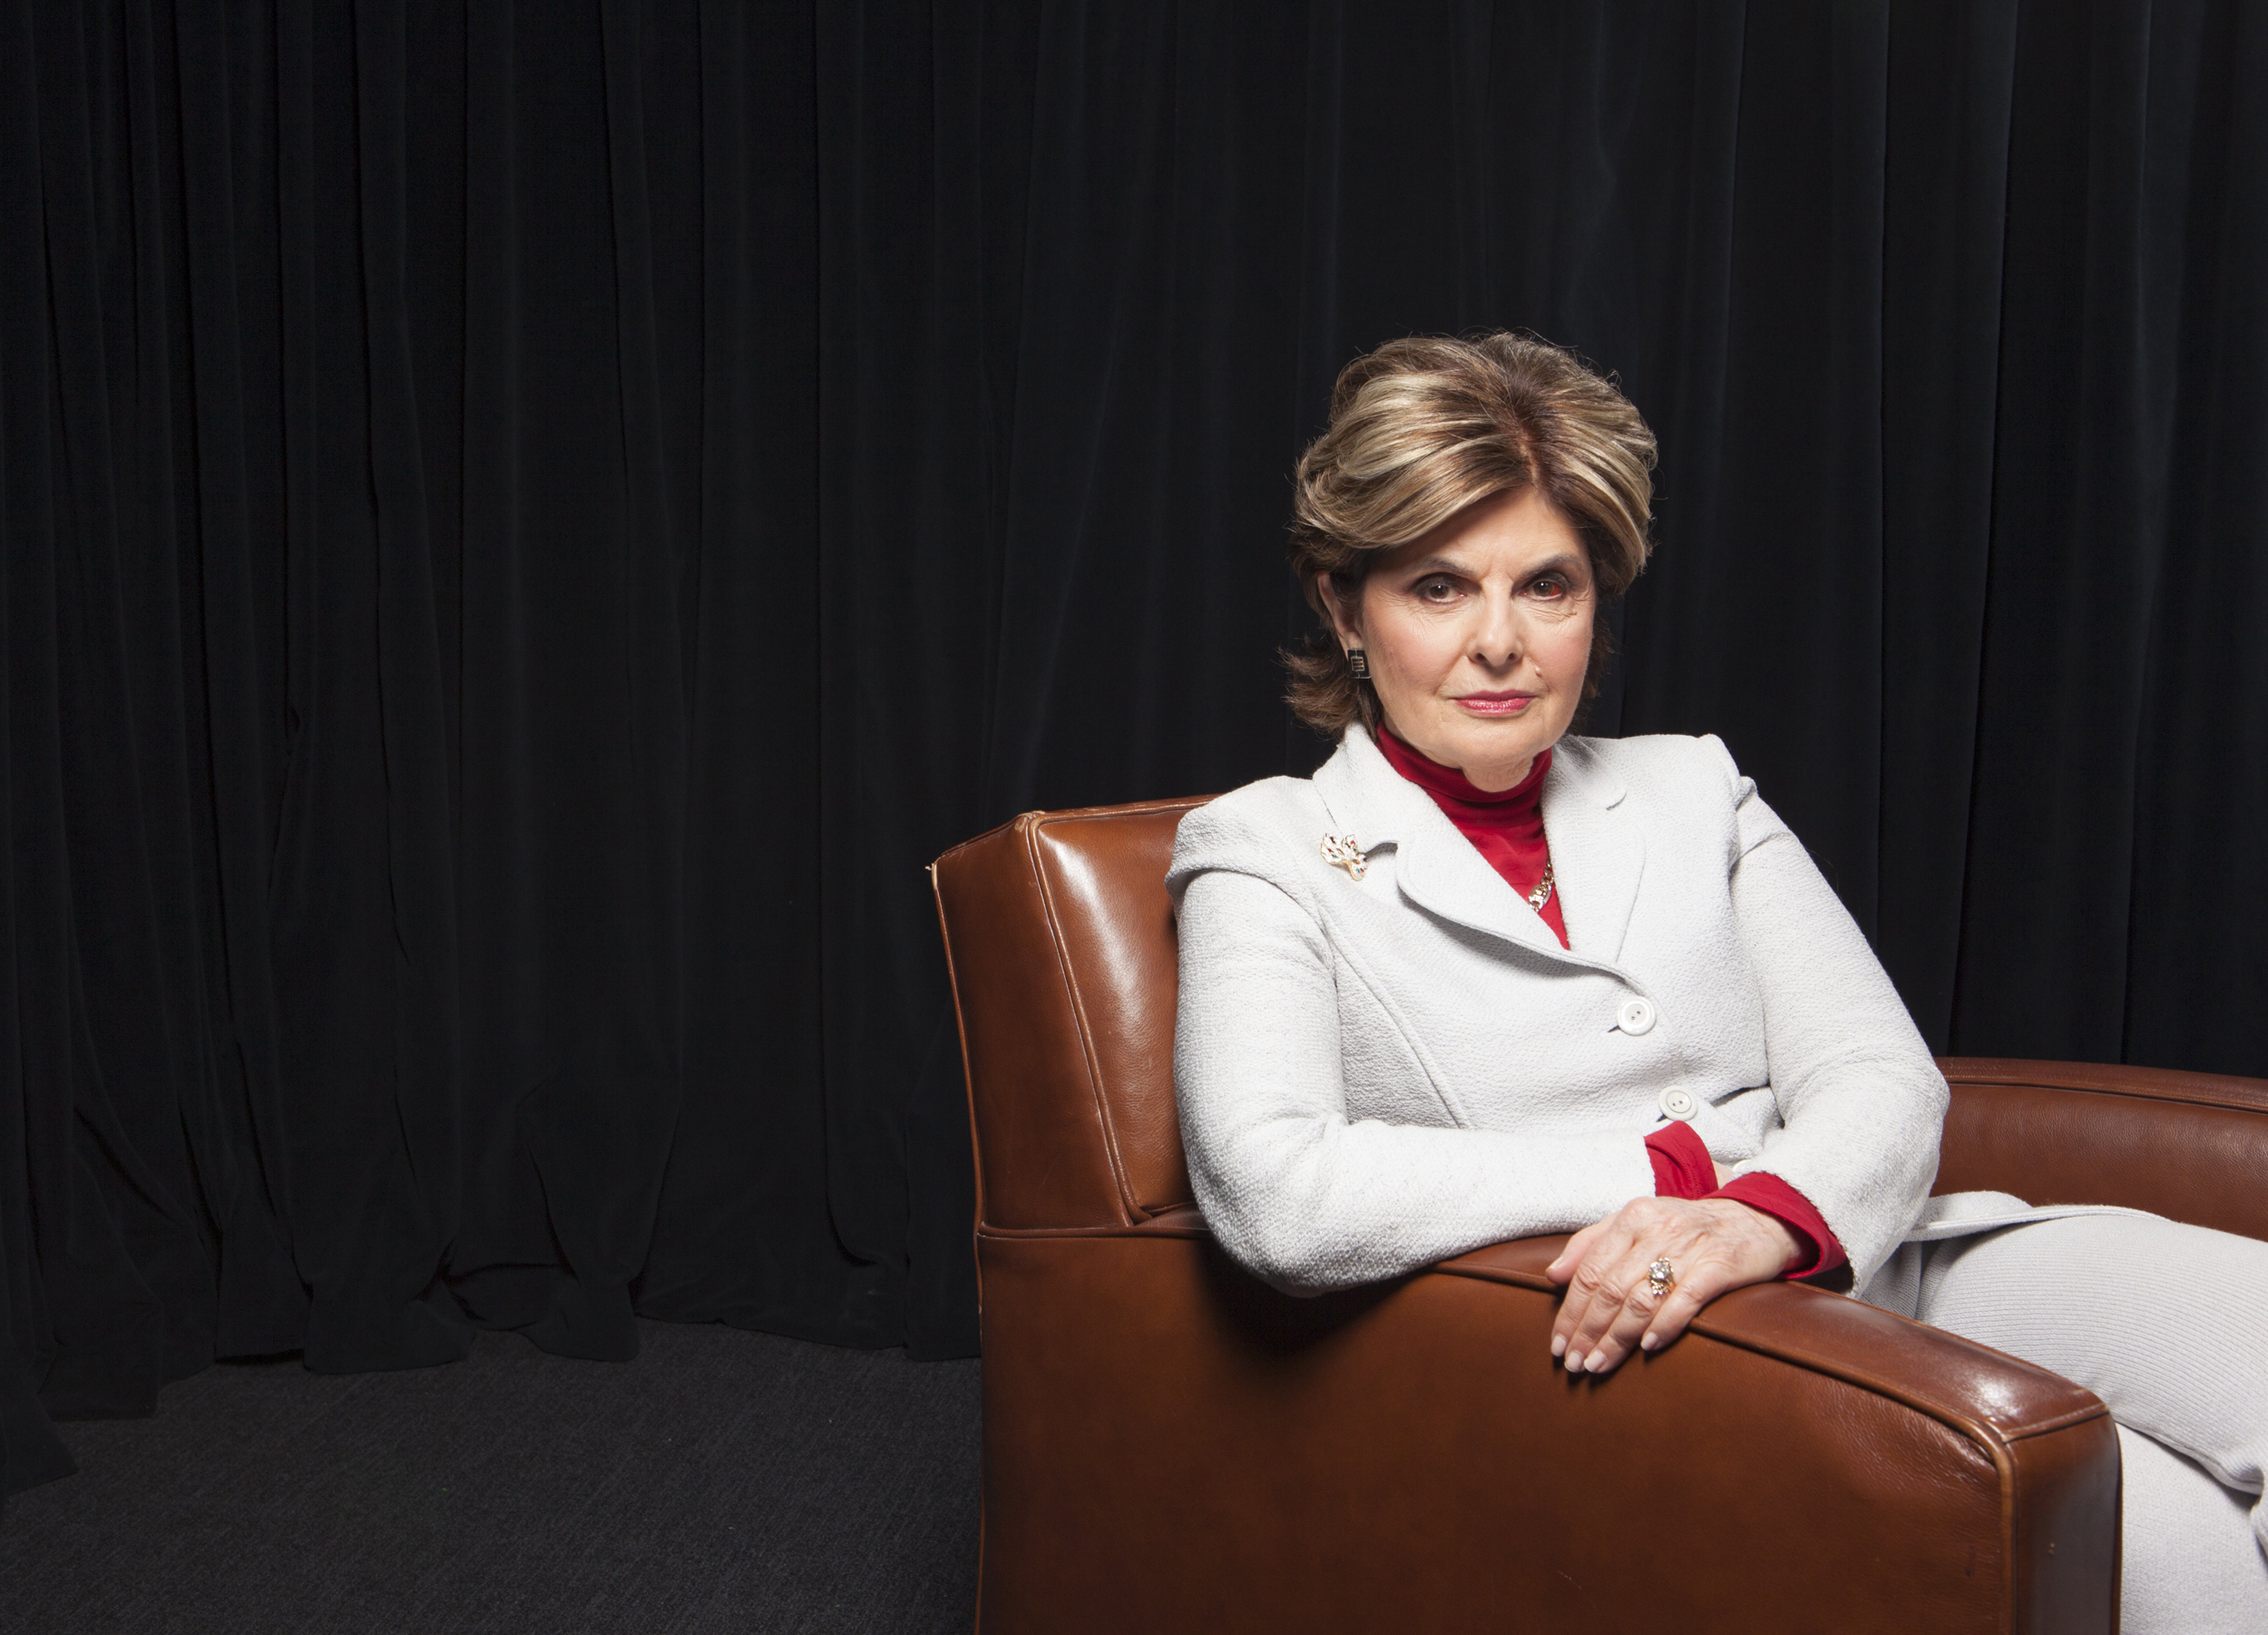 allred women As sexual-violence allegations grip the nation, seeing allred provides a candid look at one of the most public crusaders against the war on women through rare archival footage and revealing interviews with both her supporters and critics, this fascinating biographical portrait examines gloria allred's personal trauma and assesses both her.